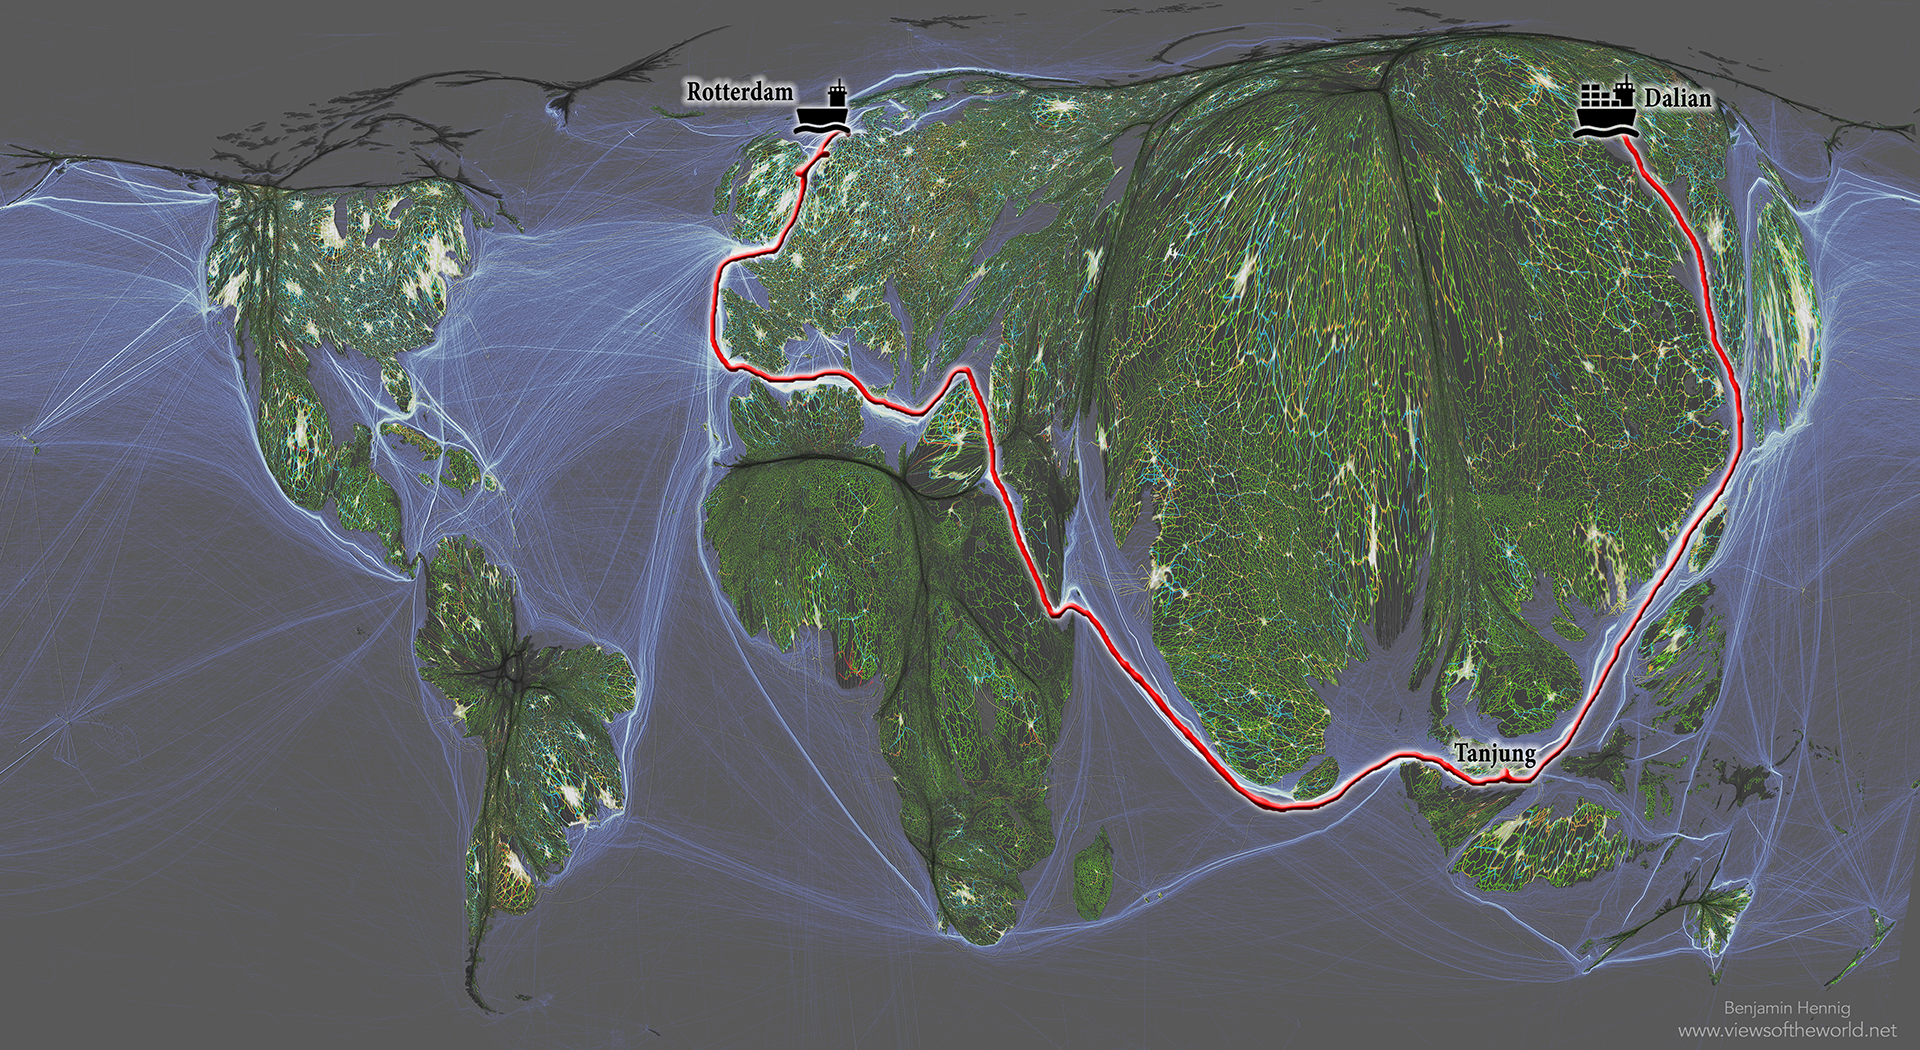 Seven Maps of the World: Shipping Routes and Interconnectivity - The Journey of MSC Oscar